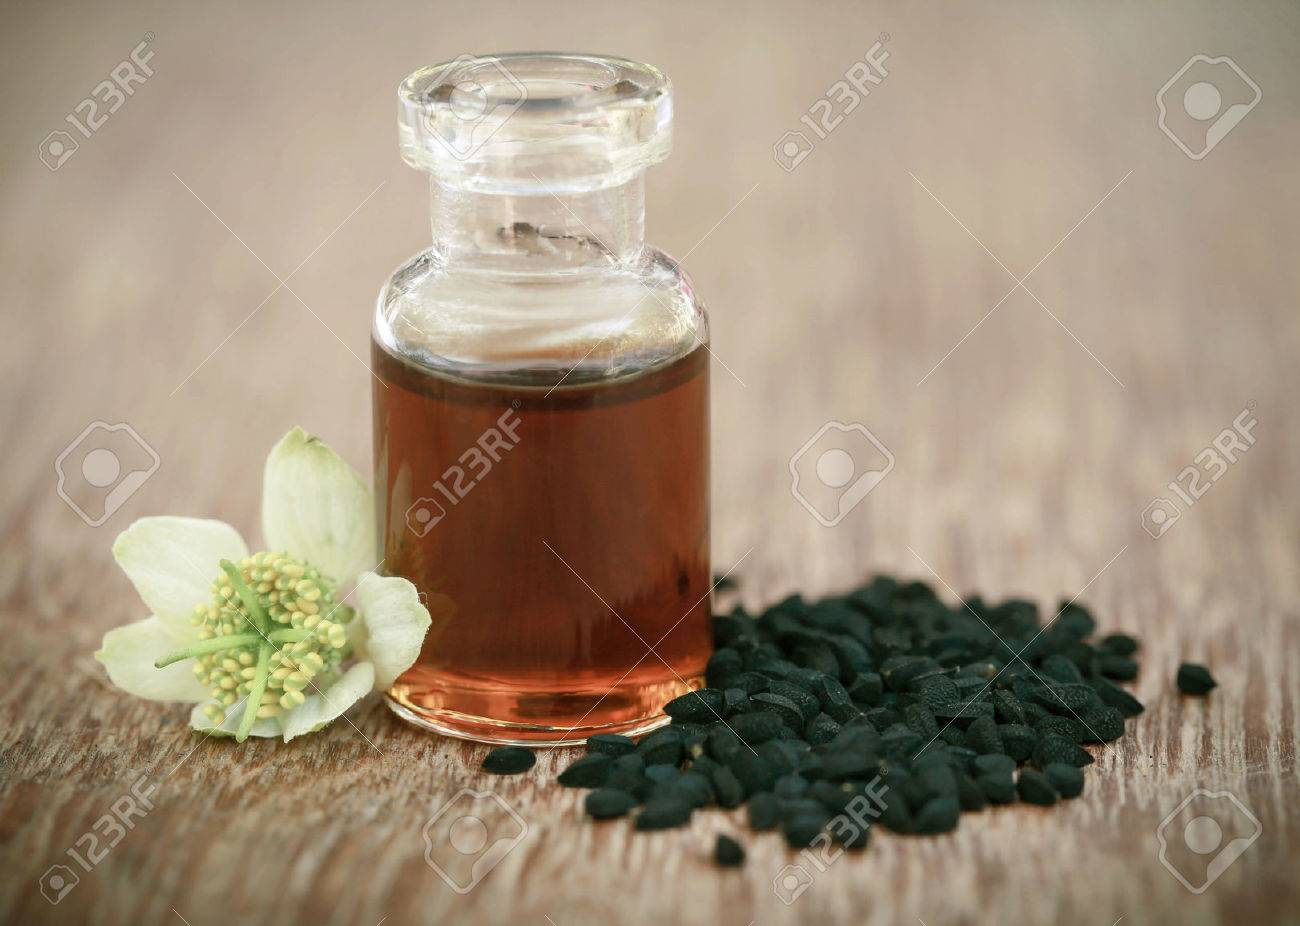 Nigella flower with seeds and essential oil in a glass bottle - 74053769